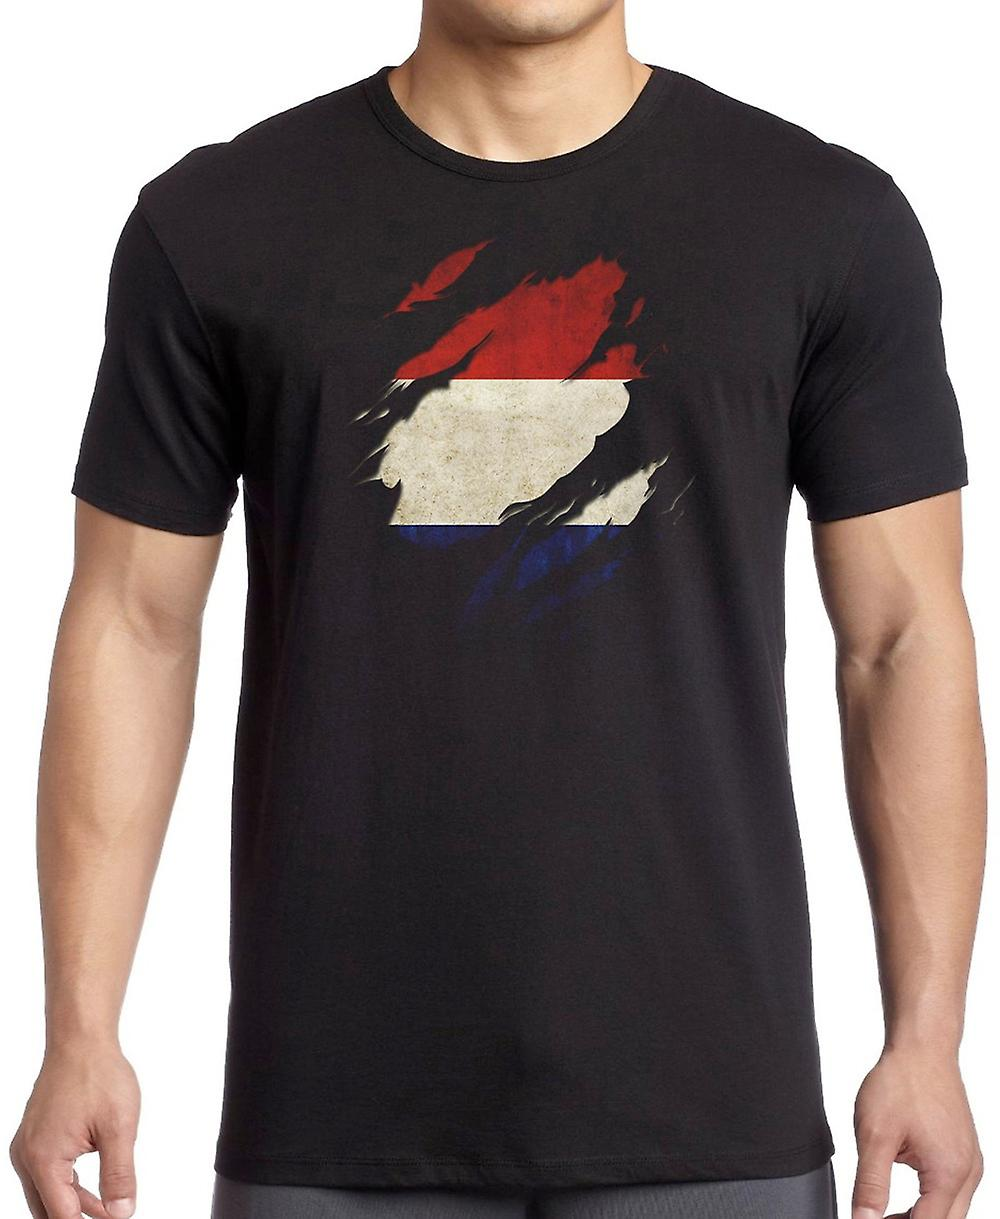 Netherlands Grunge Flag Ripped Effect T Shirt  - 3xl